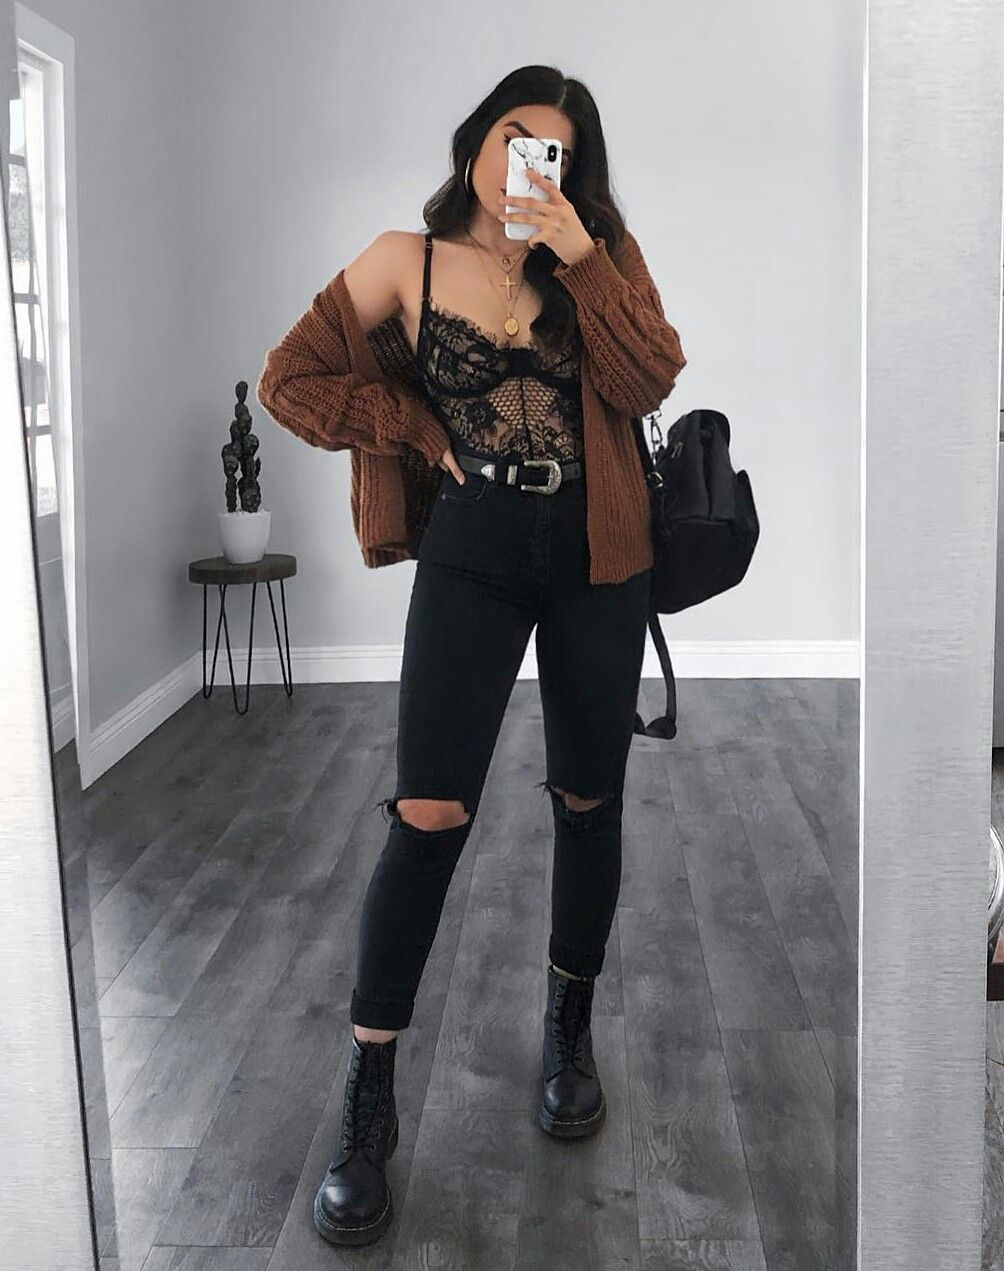 TOP FASHION PAGE WITH OUTFITS, TREND CLOTHES & ACCESSORIES